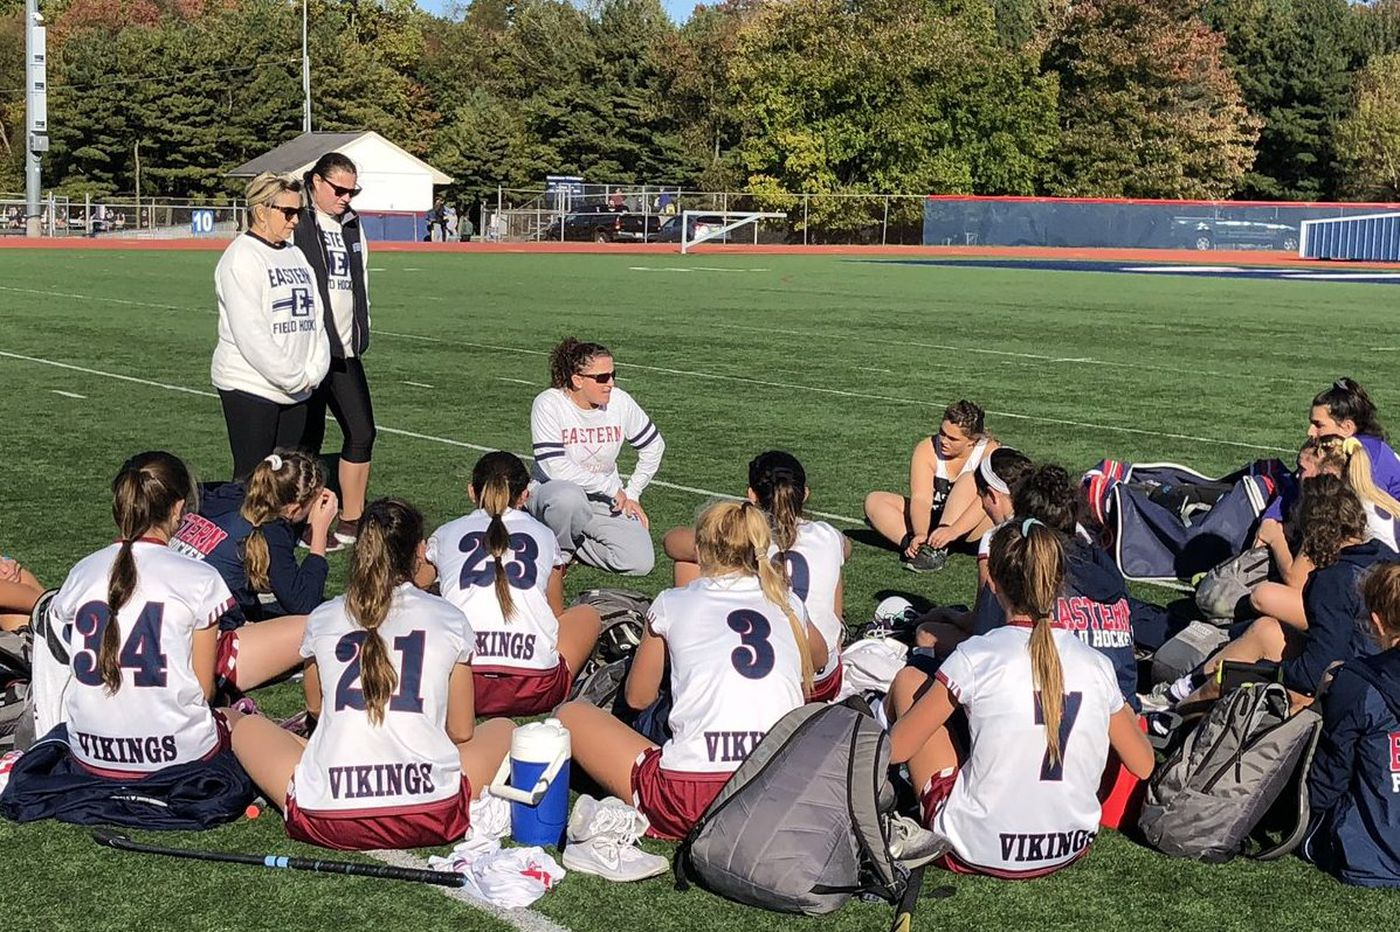 Tuesday's South Jersey roundup: Seven area teams advance to field hockey sectional title games